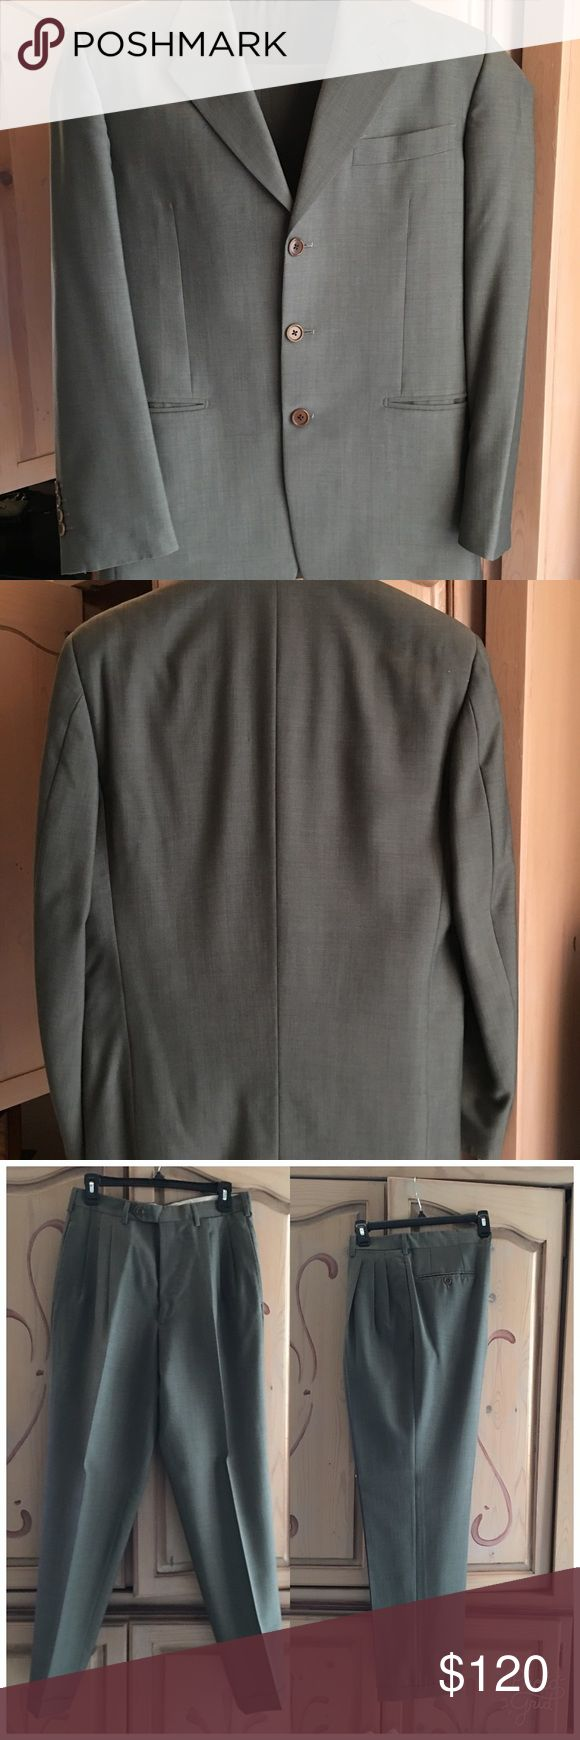 "Men's Italian grey suit Lightweight men's grey suit with cuffed pants. Made in Italy. 42R. Pants 32""waist and 32"" inseam. In perfect condition. No marks stains or damage.  Includes garment bag. Suits & Blazers Suits"